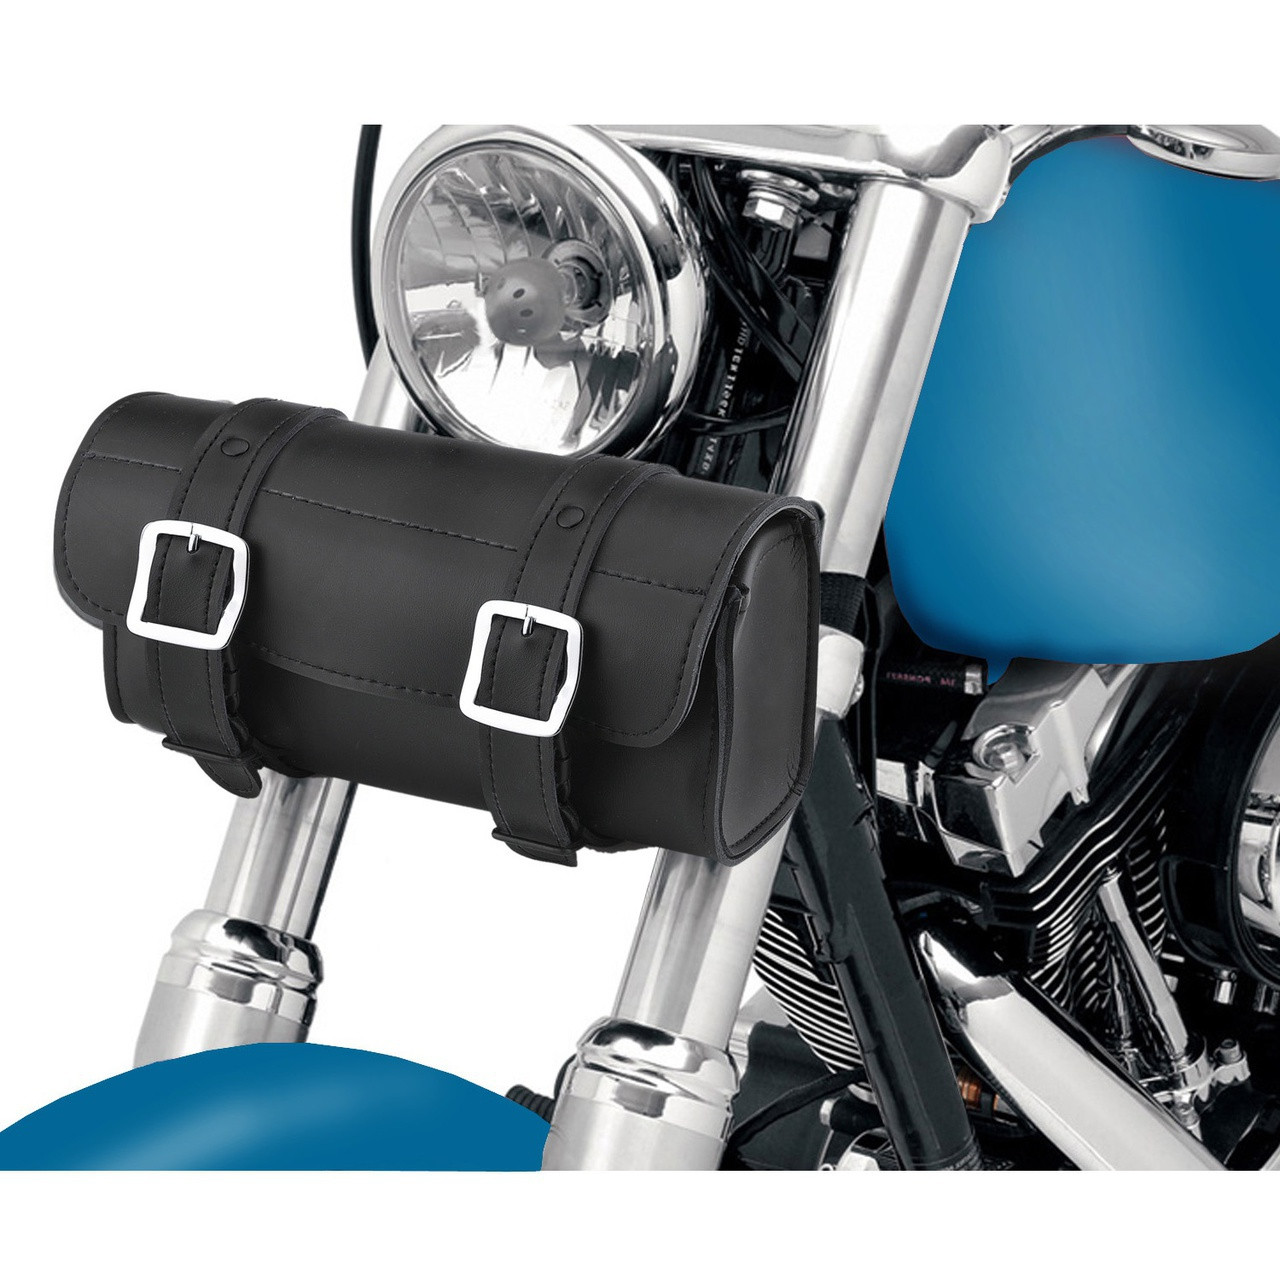 Armor Plain Motorcycle Tool Bag In front of Bike View